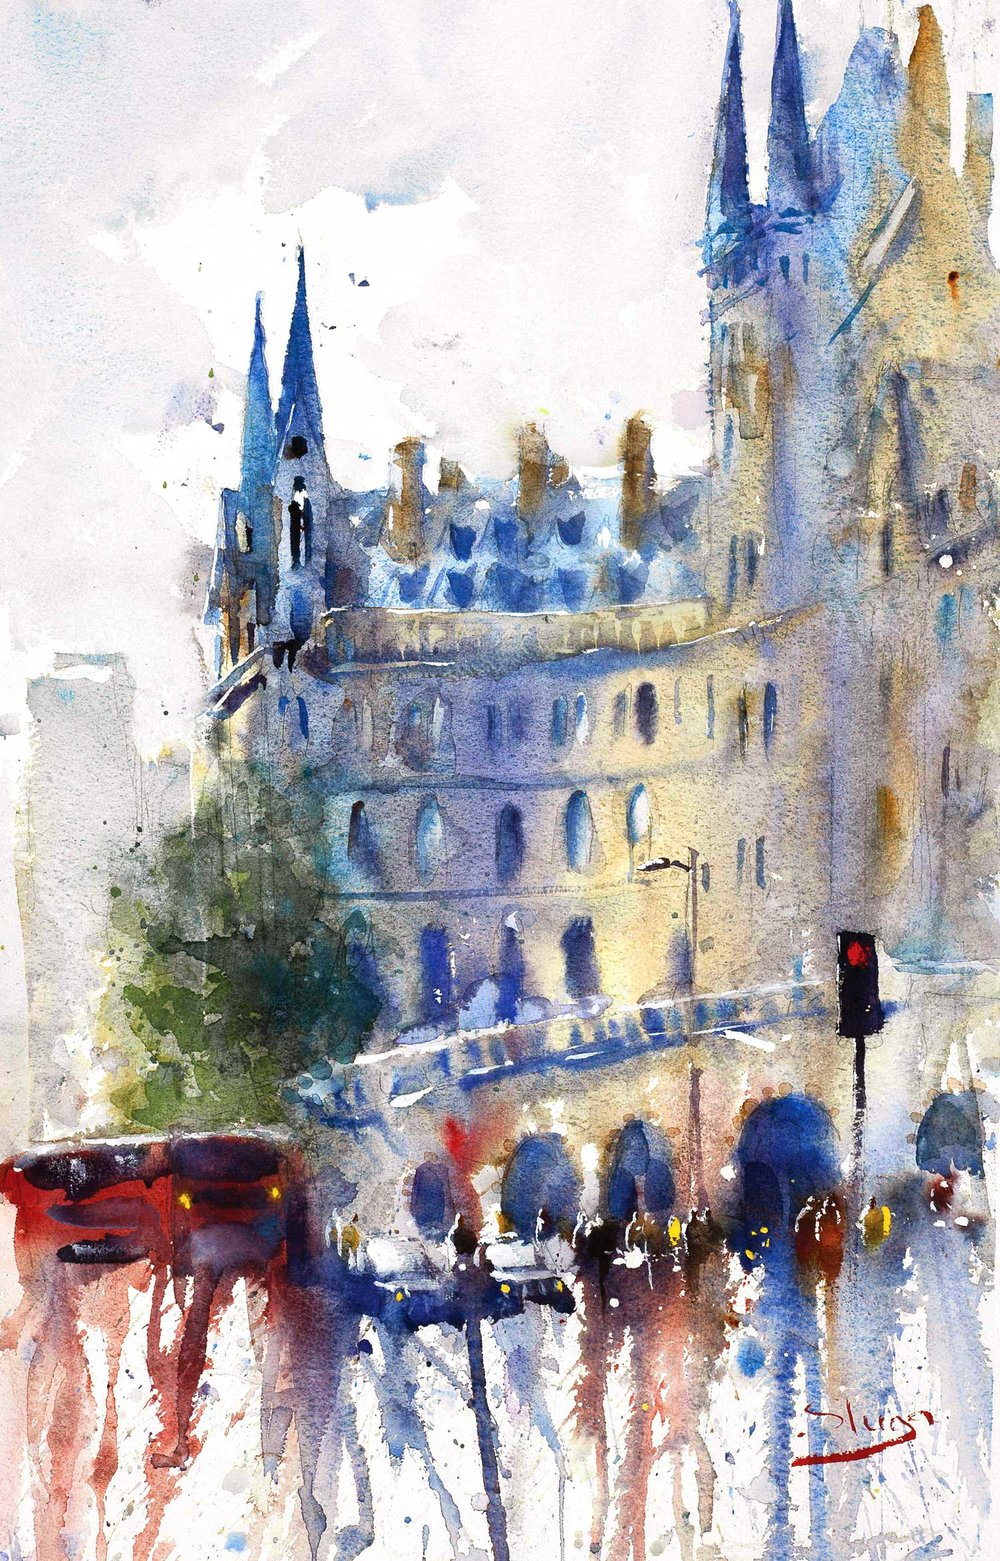 St Pancras 35 x 54 cm (Featured on recent London APV Film)